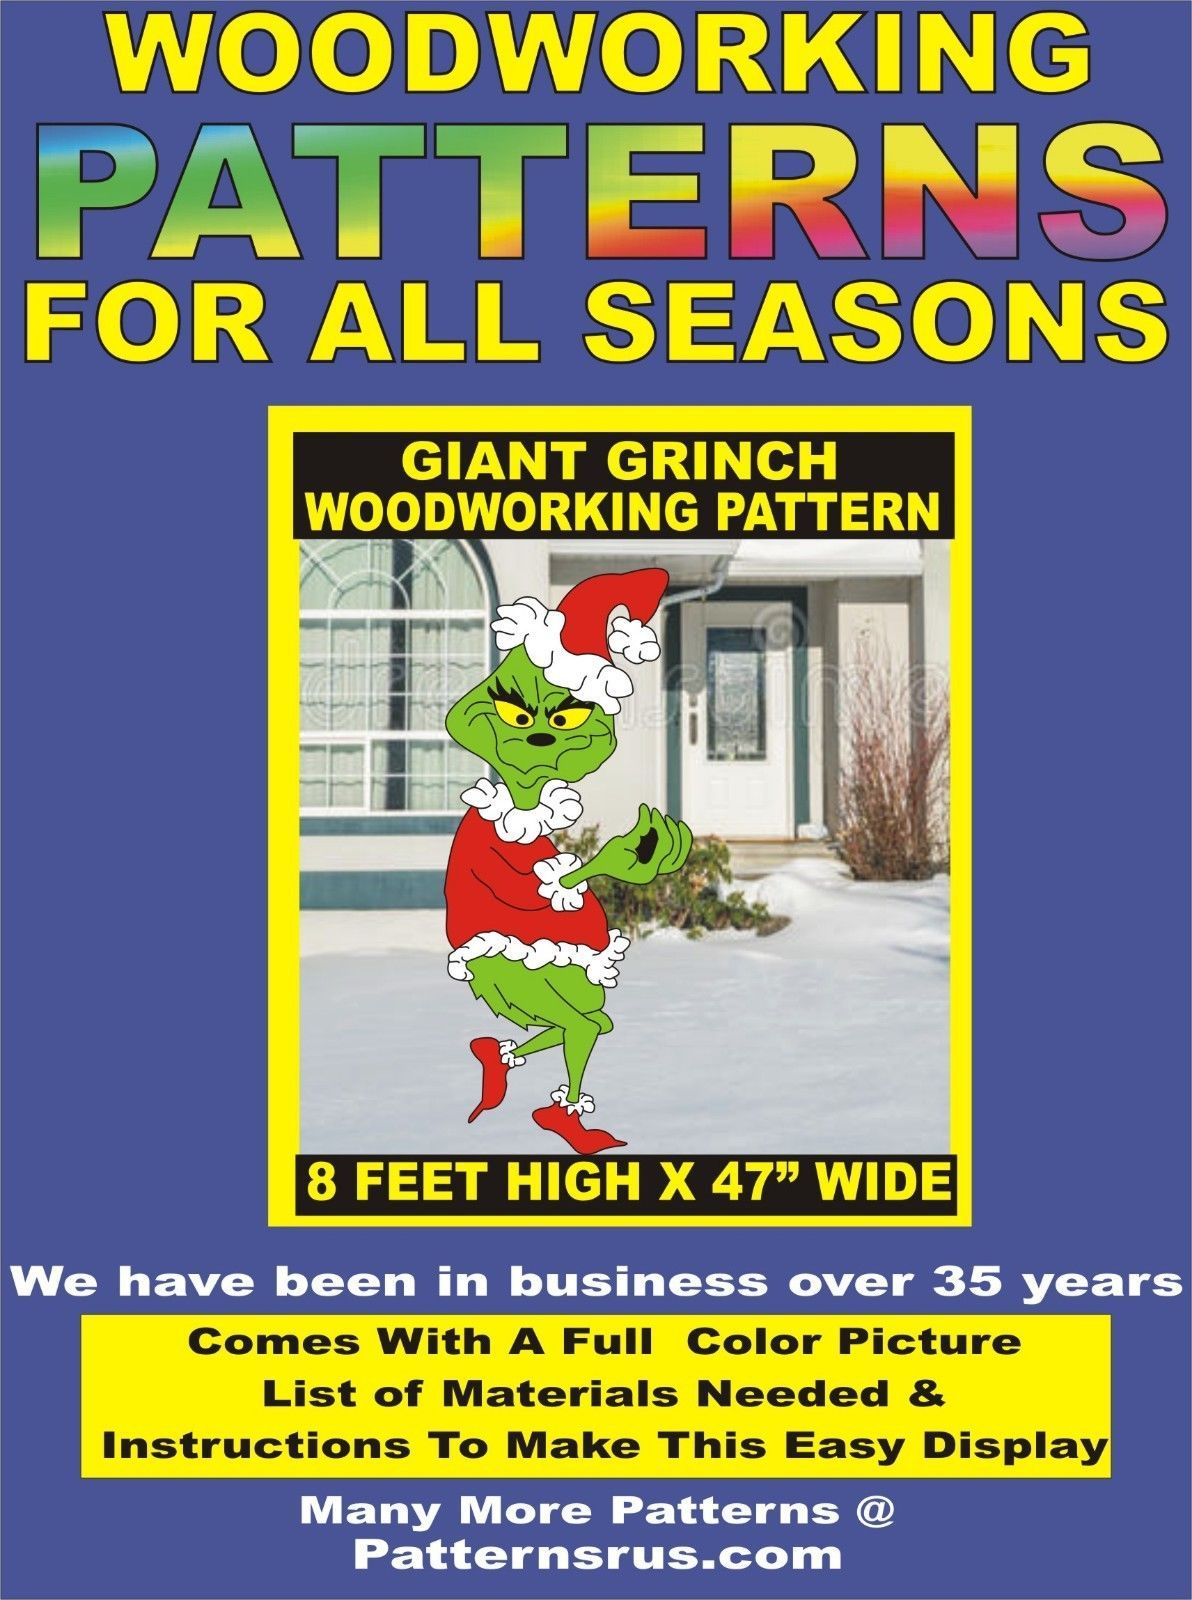 grinch huge stealing lights giant christmas woodworking